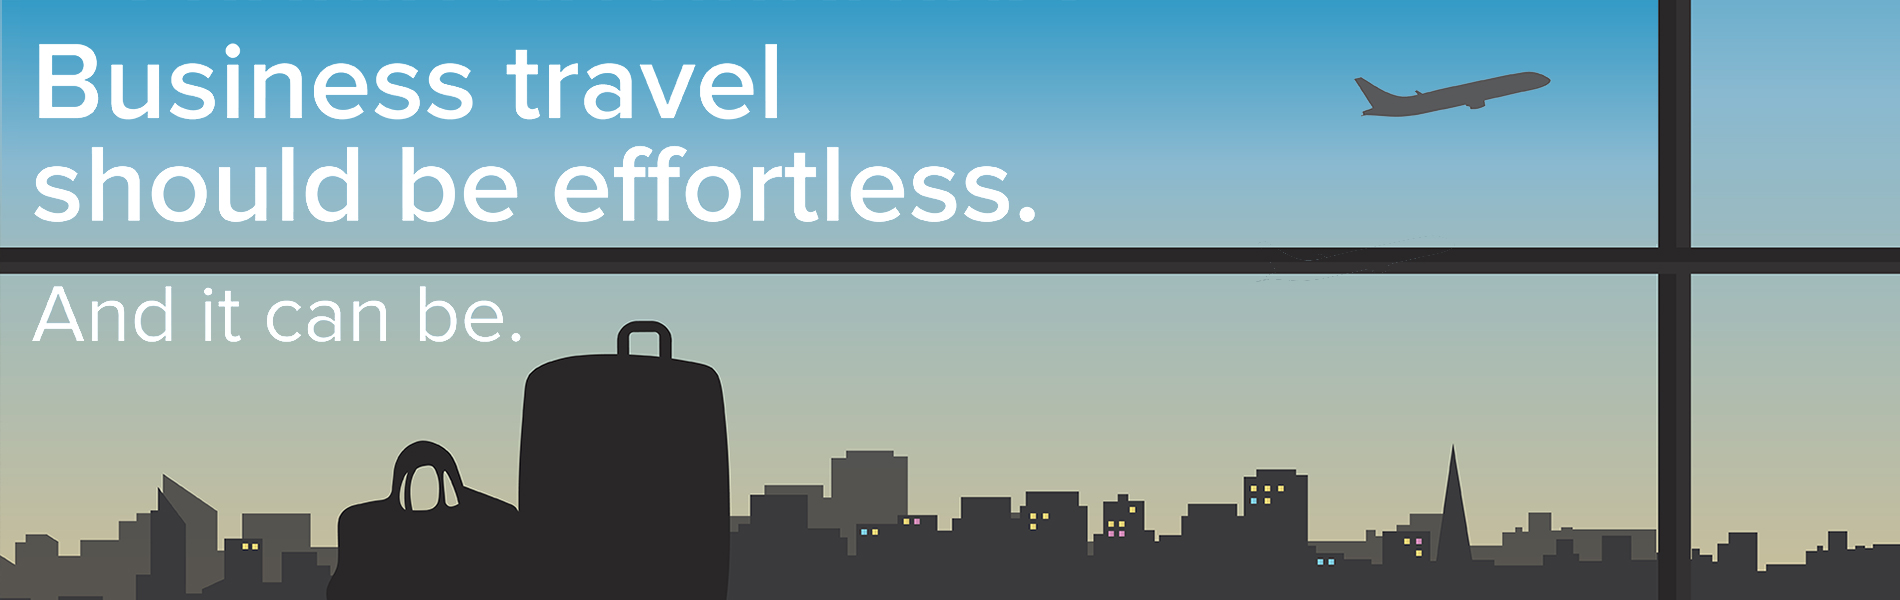 Concur Partners With Lyft And HotelTonight To Meet Growing On Demand Needs Of Business Travelers